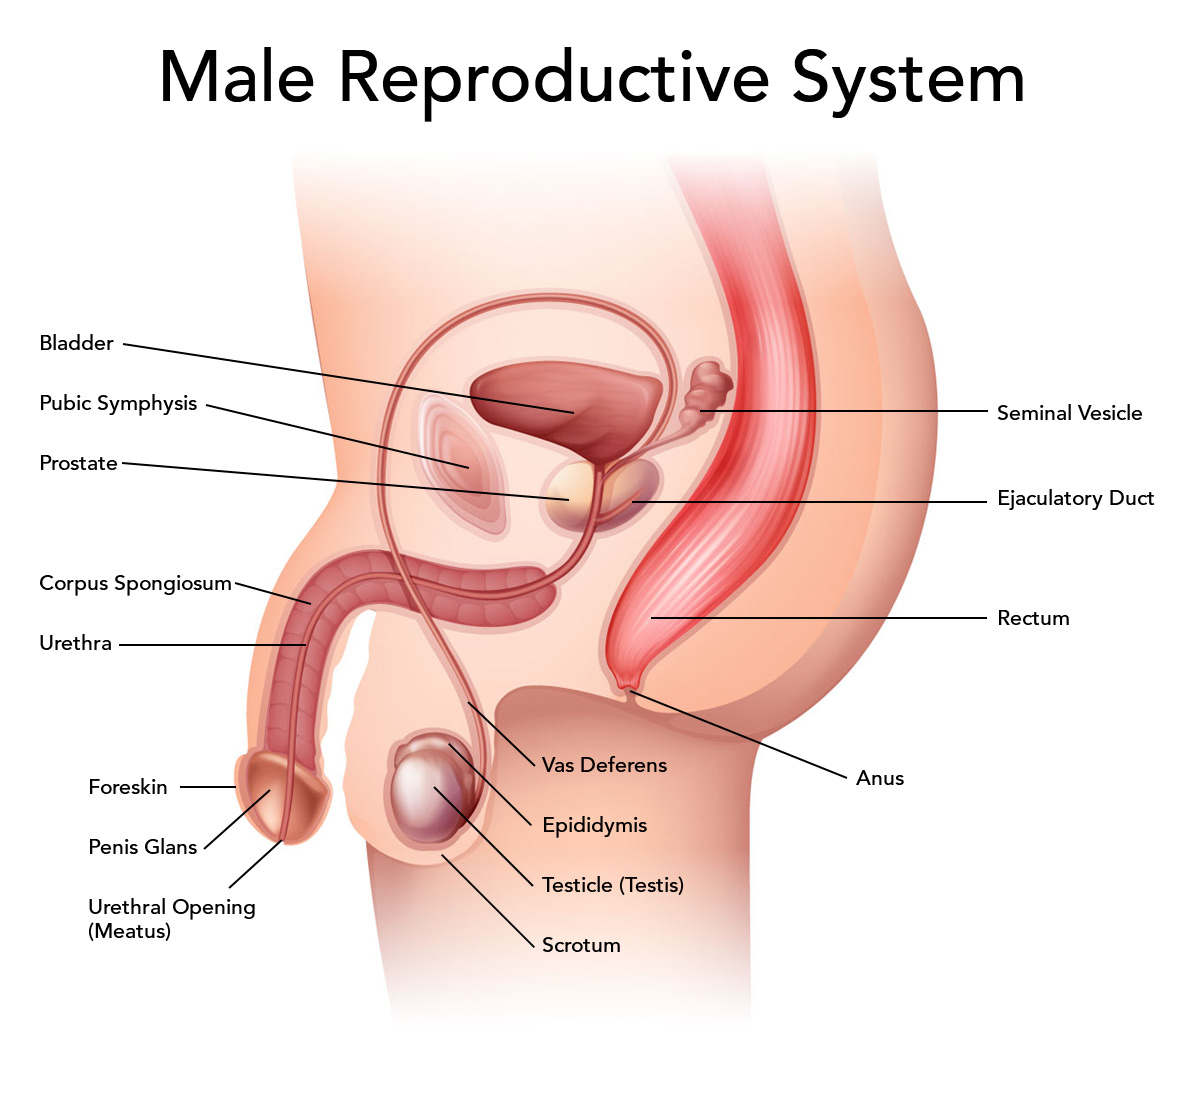 Male Reproductive System Locations And Functions Of The Male